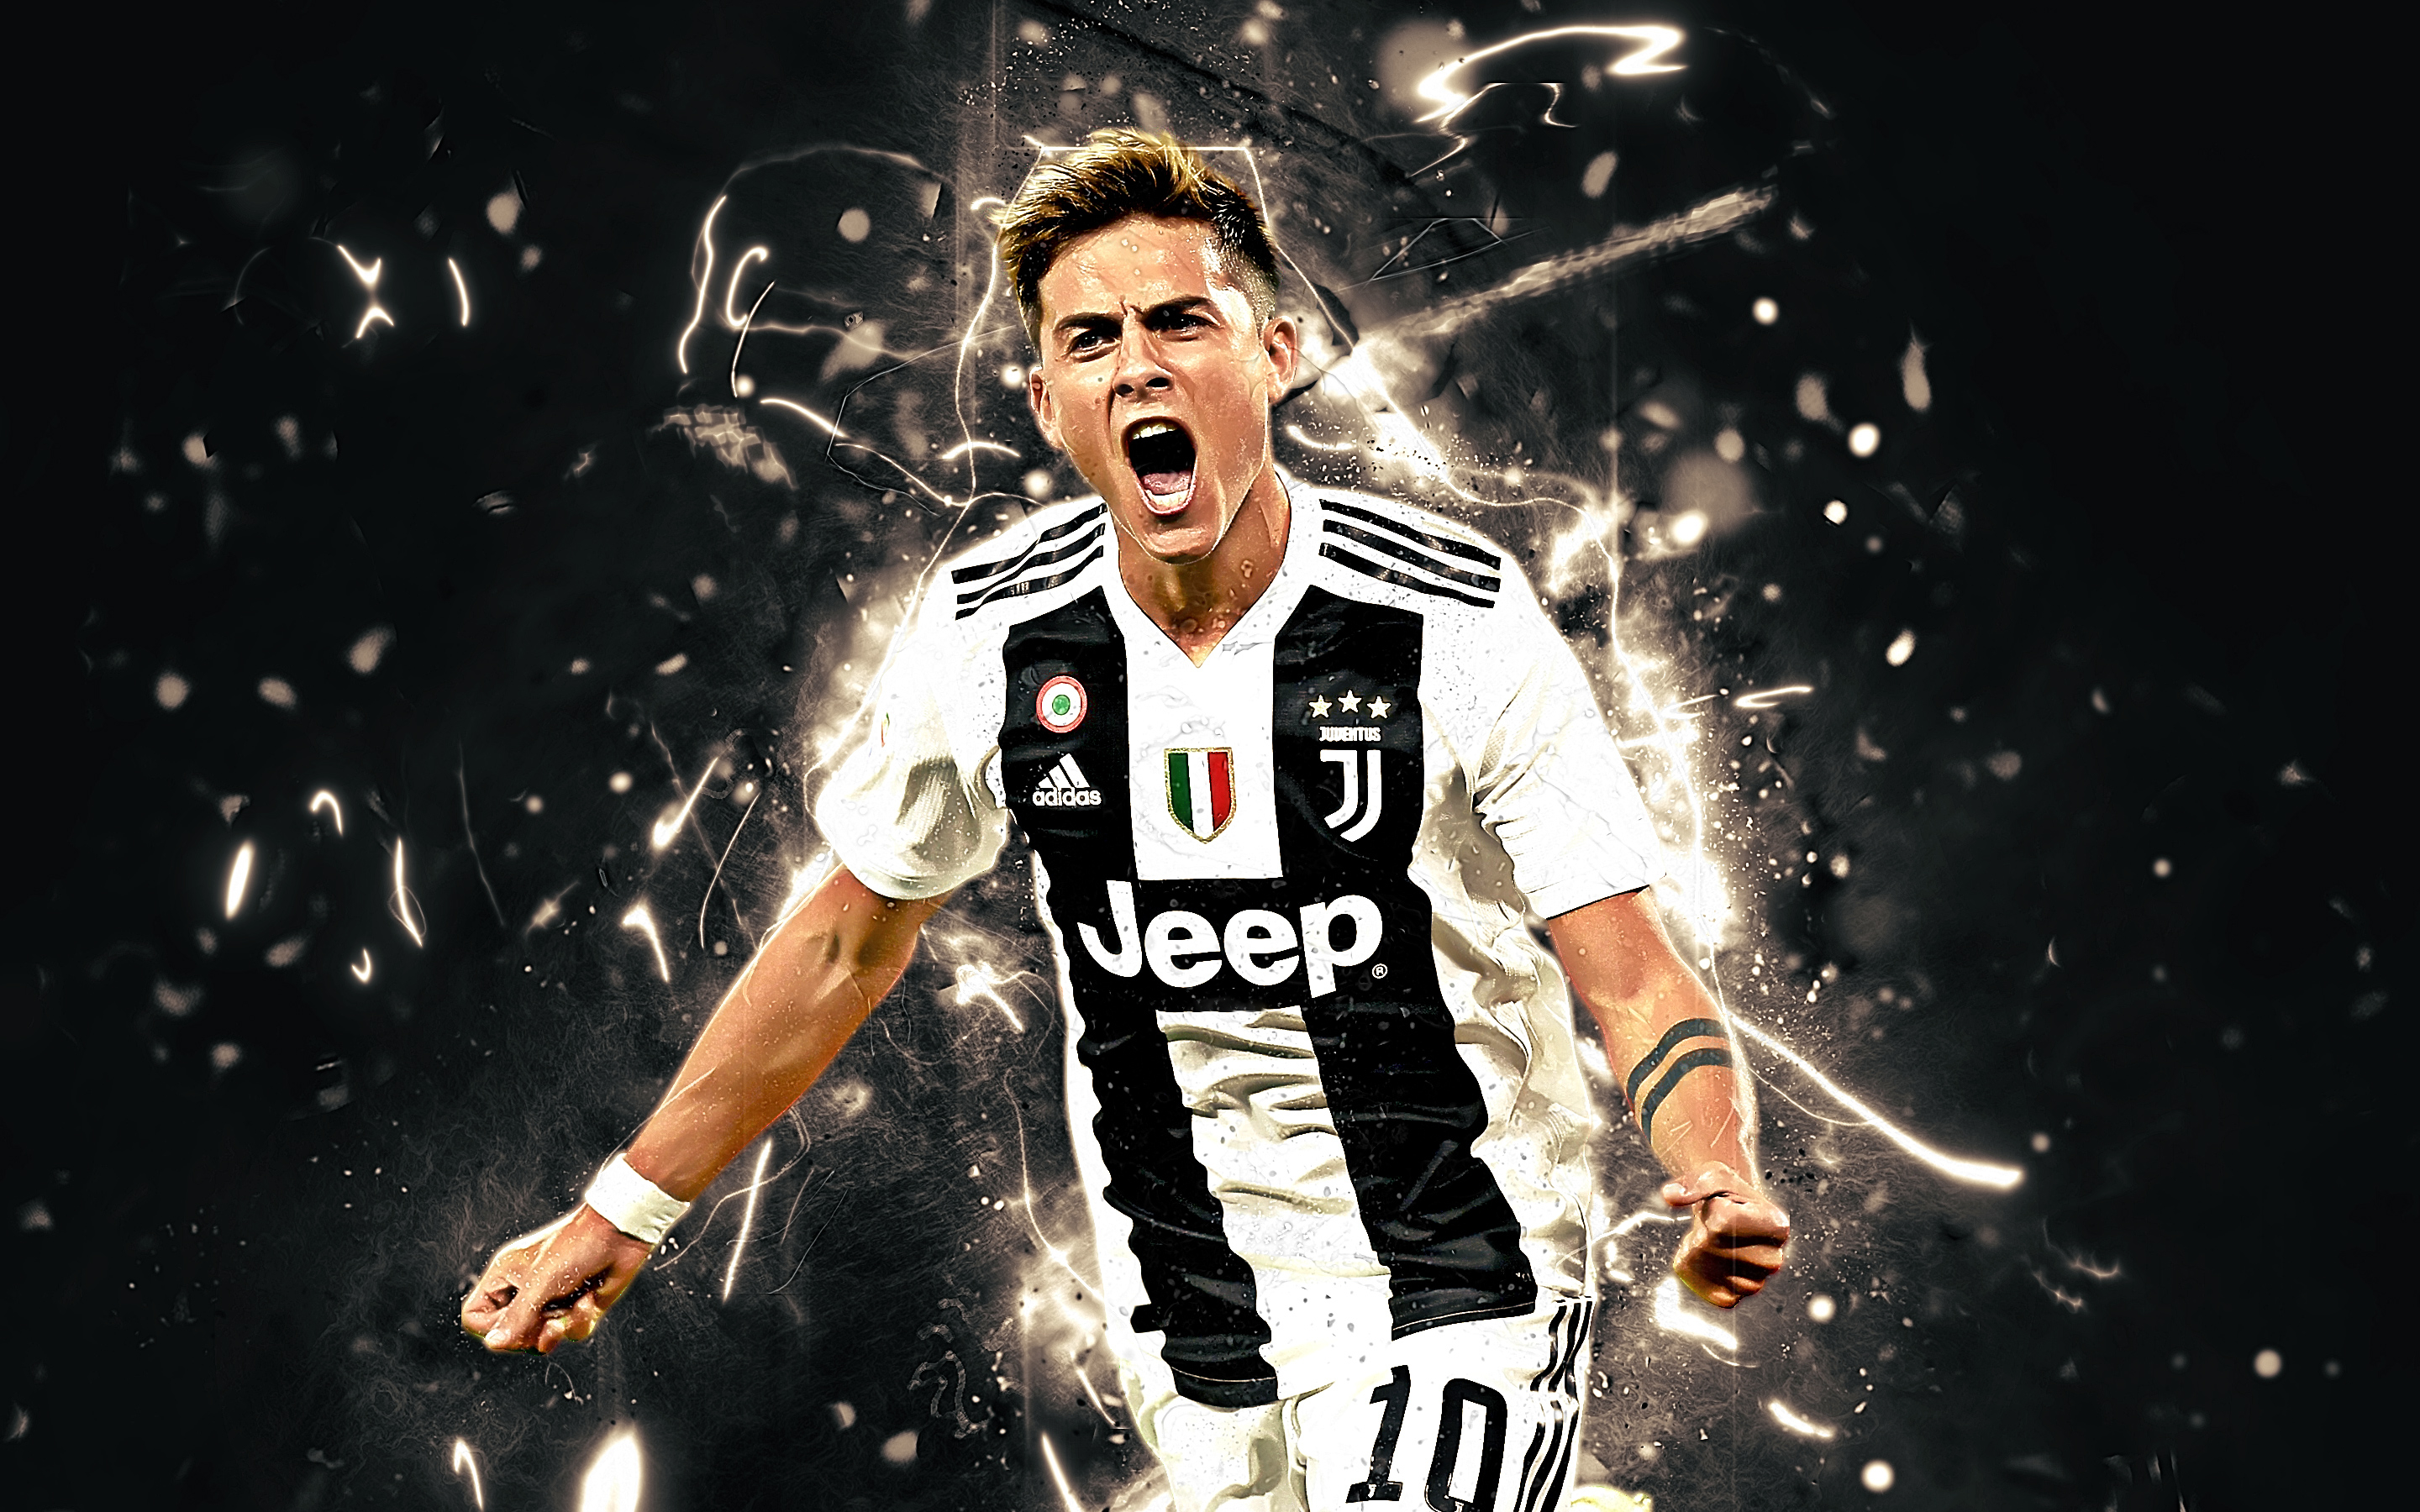 Paulo Dybala Wallpaper Hd Juventus F C 2880x1800 Download Hd Wallpaper Wallpapertip